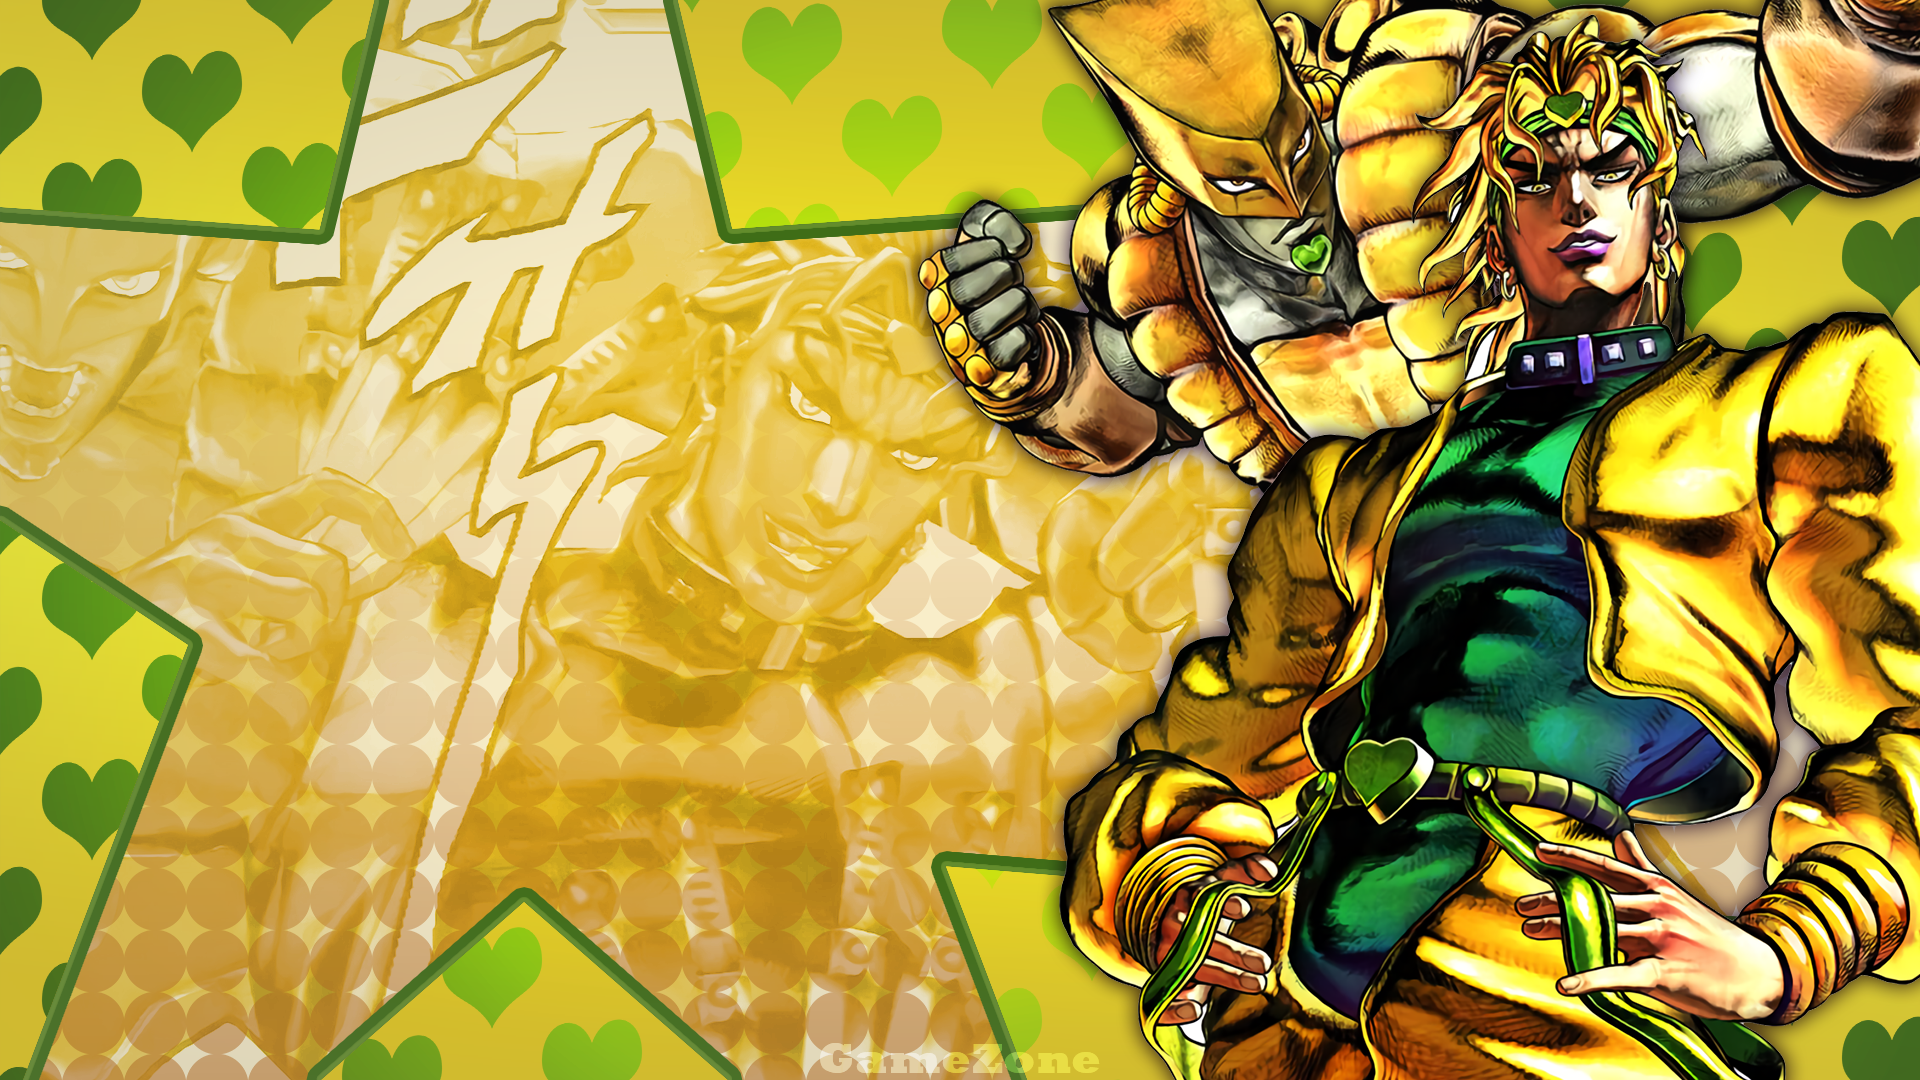 DIO HD Wallpaper | Background Image | 1920x1080 | ID:1079606 - Wallpaper  Abyss